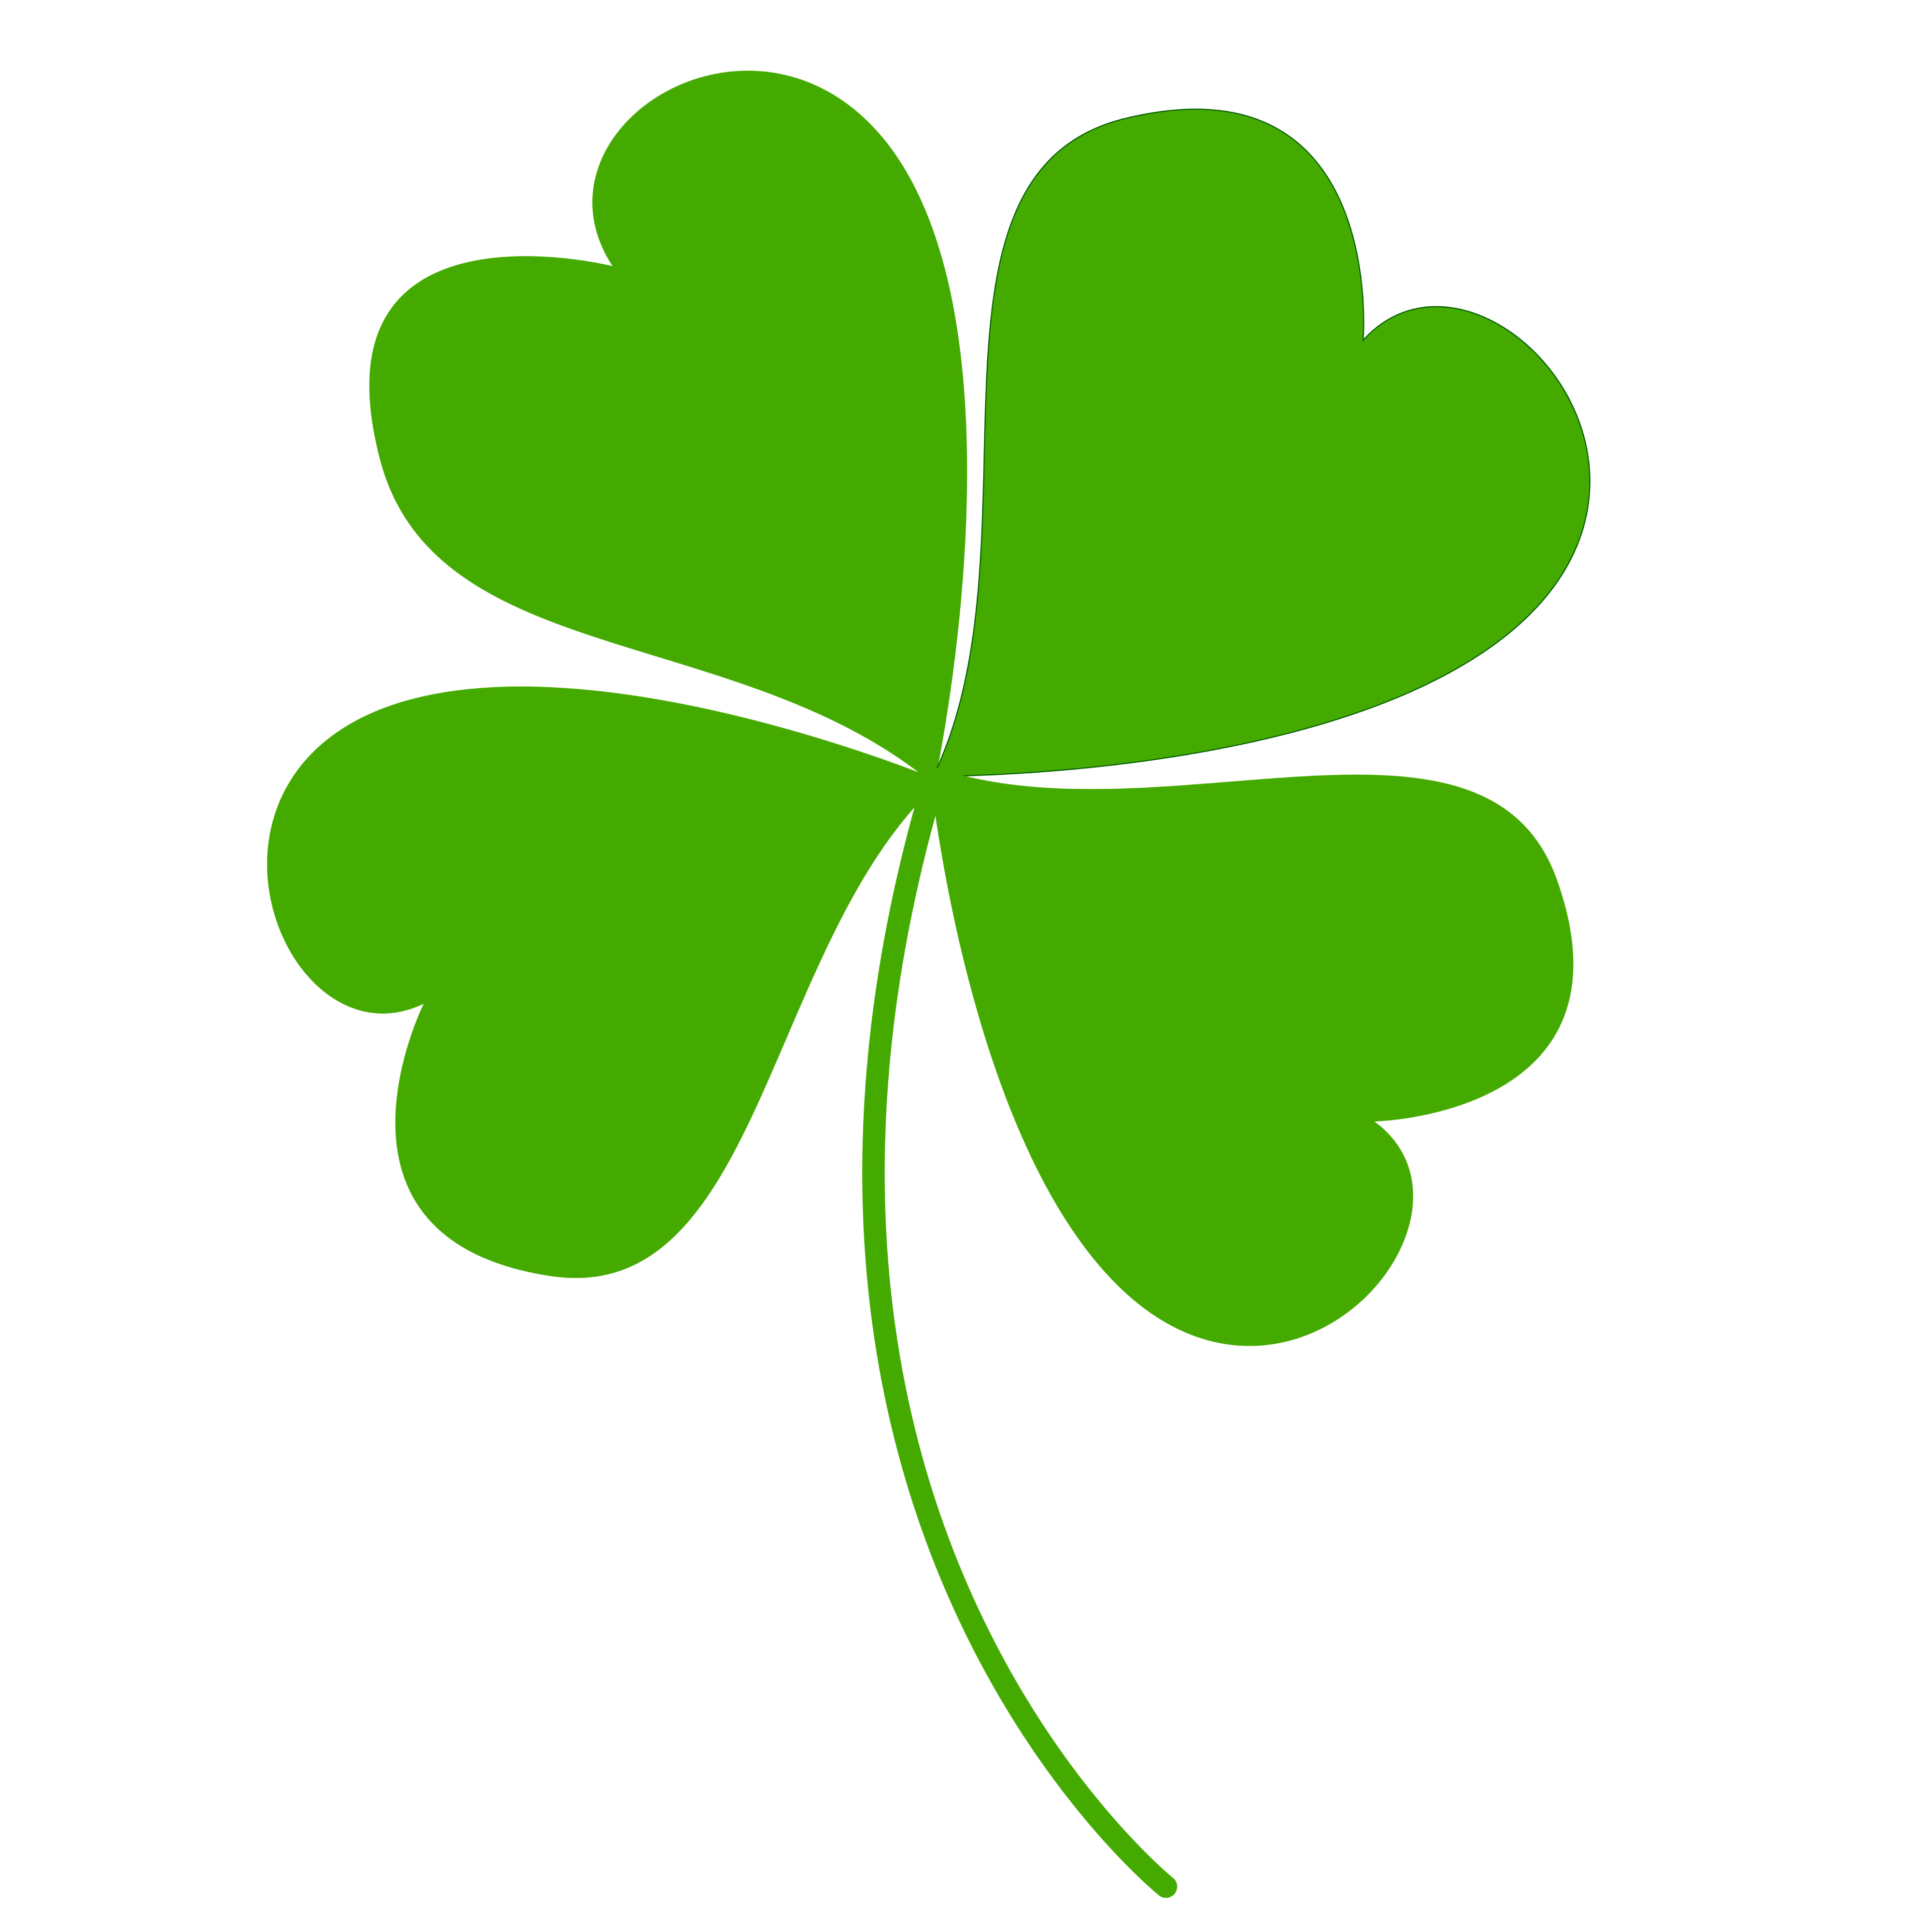 4000x4000 Free Clipart Of A Green St Paddys Day Shamrock Four Leaf Clover